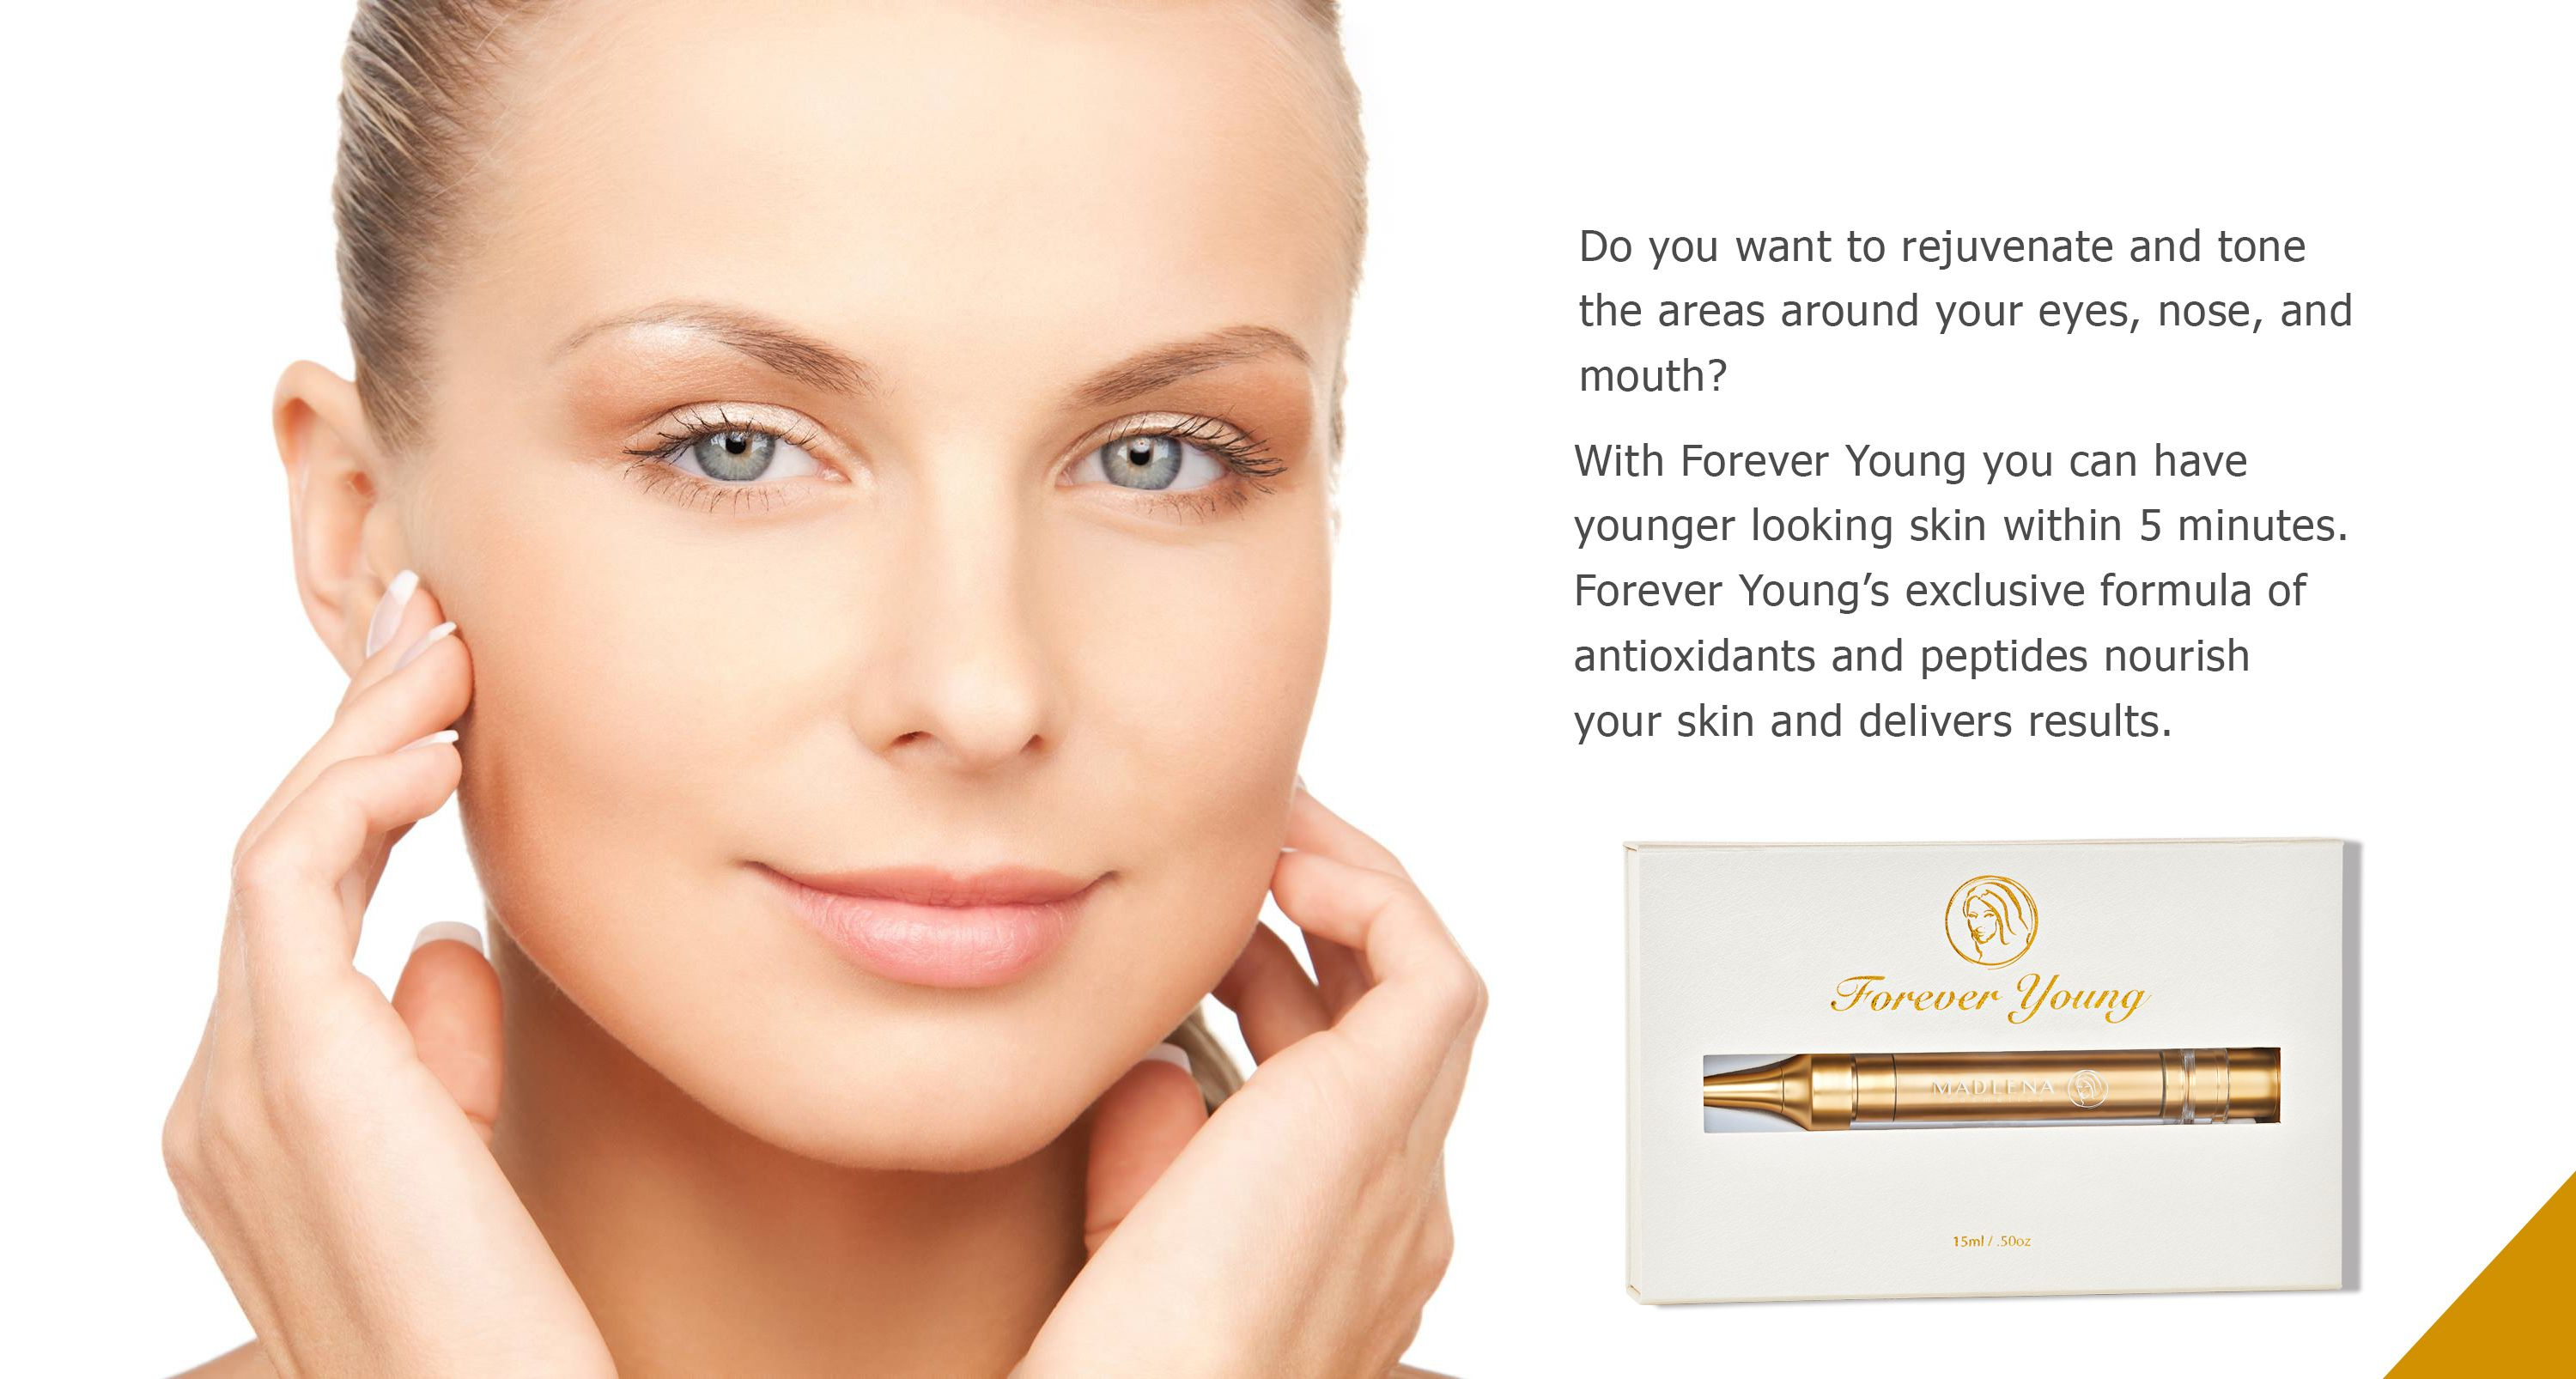 Rejuvenate and Look Great with Forever Young  | Madlena